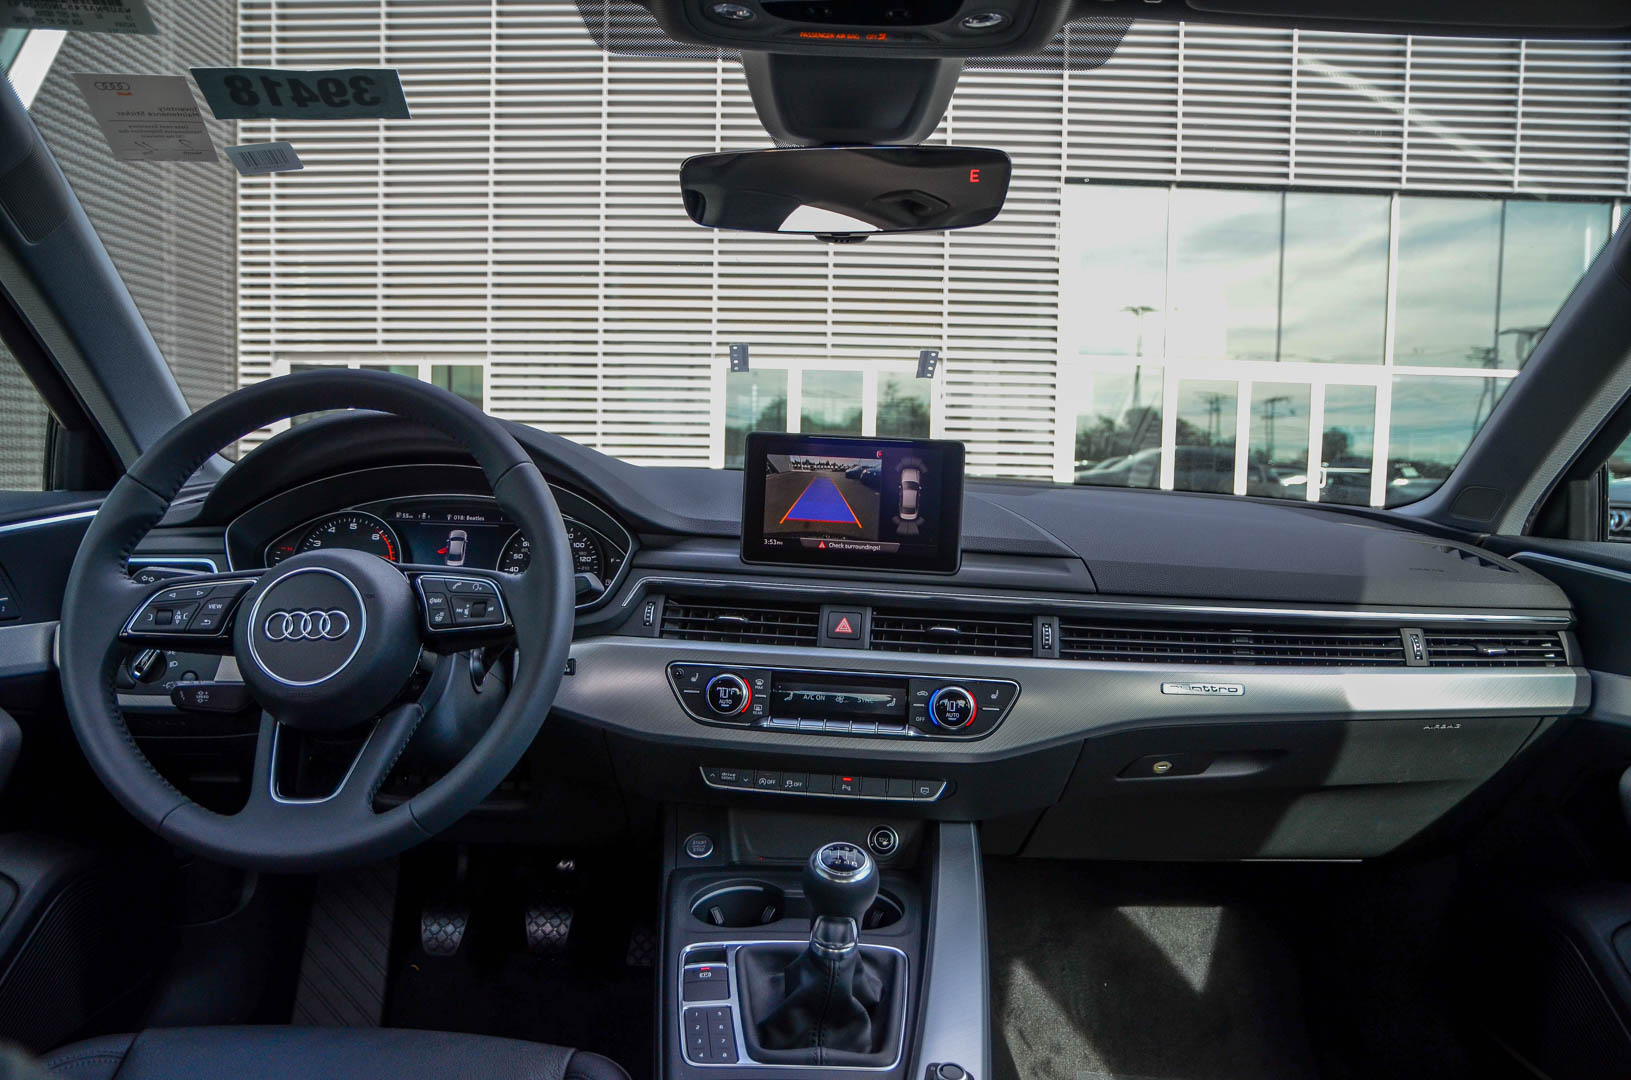 How Much Does A BMW Cost >> TEST DRIVE: 2017 Audi A4 2.0T Quattro Manual